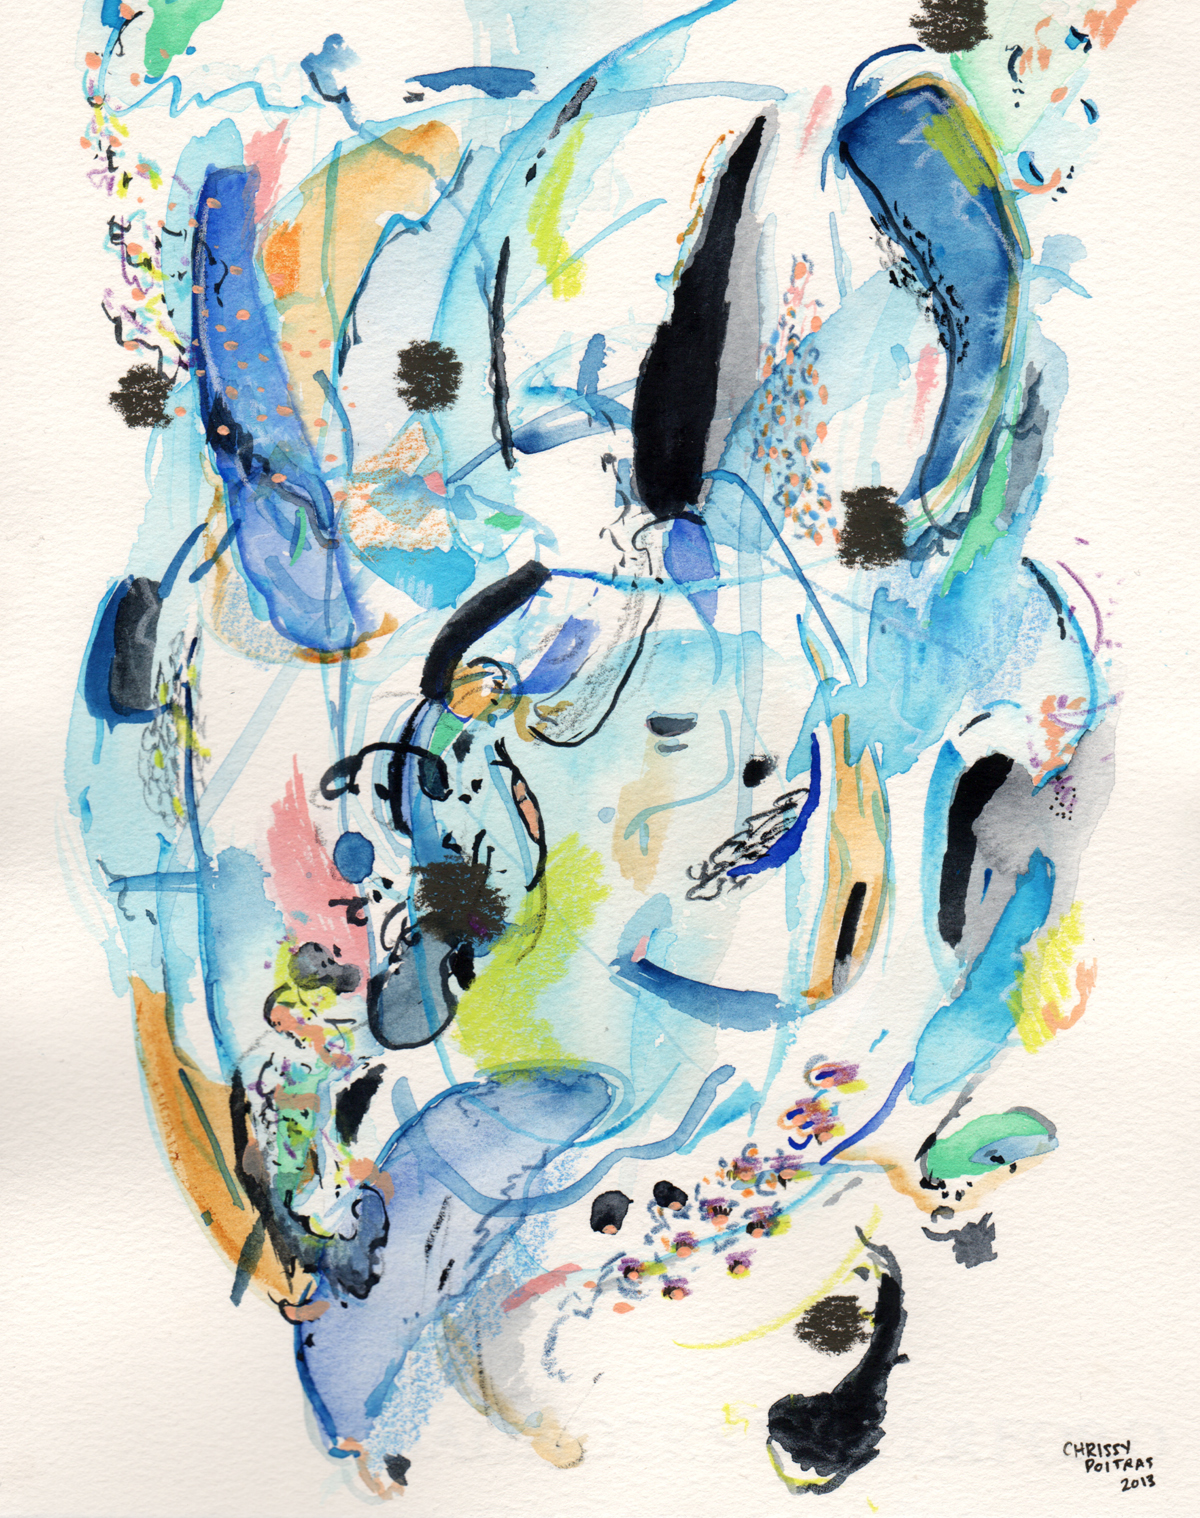 Chrissy Poitras, Painting, Abstract, Watercolour, Small Paper Work, Blue